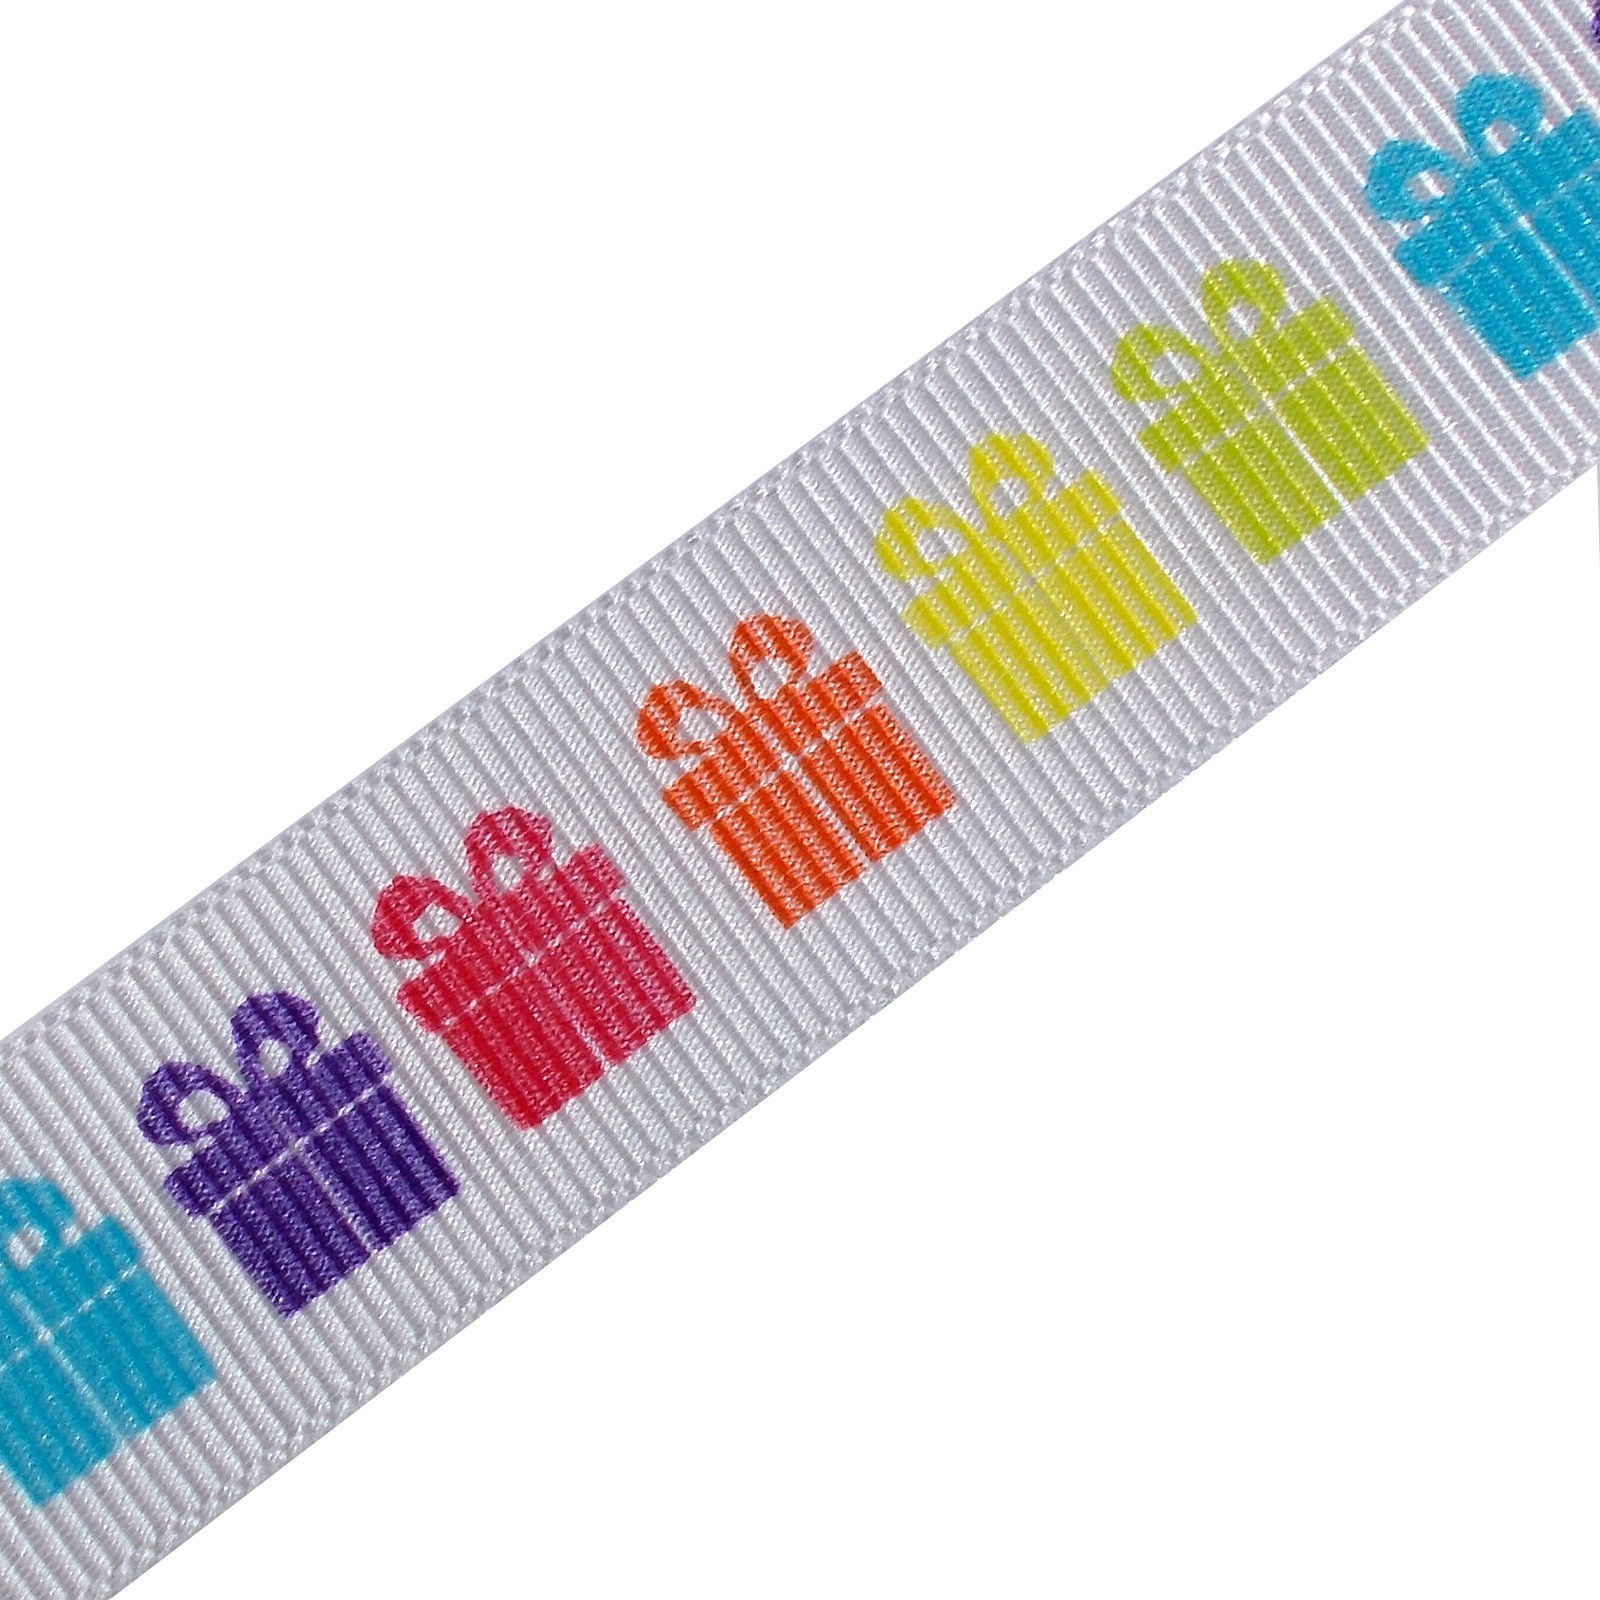 Berisfords Bright Rainbow Grosgrain Ribbon 16mm wide Parcel Gifts 2 metre length